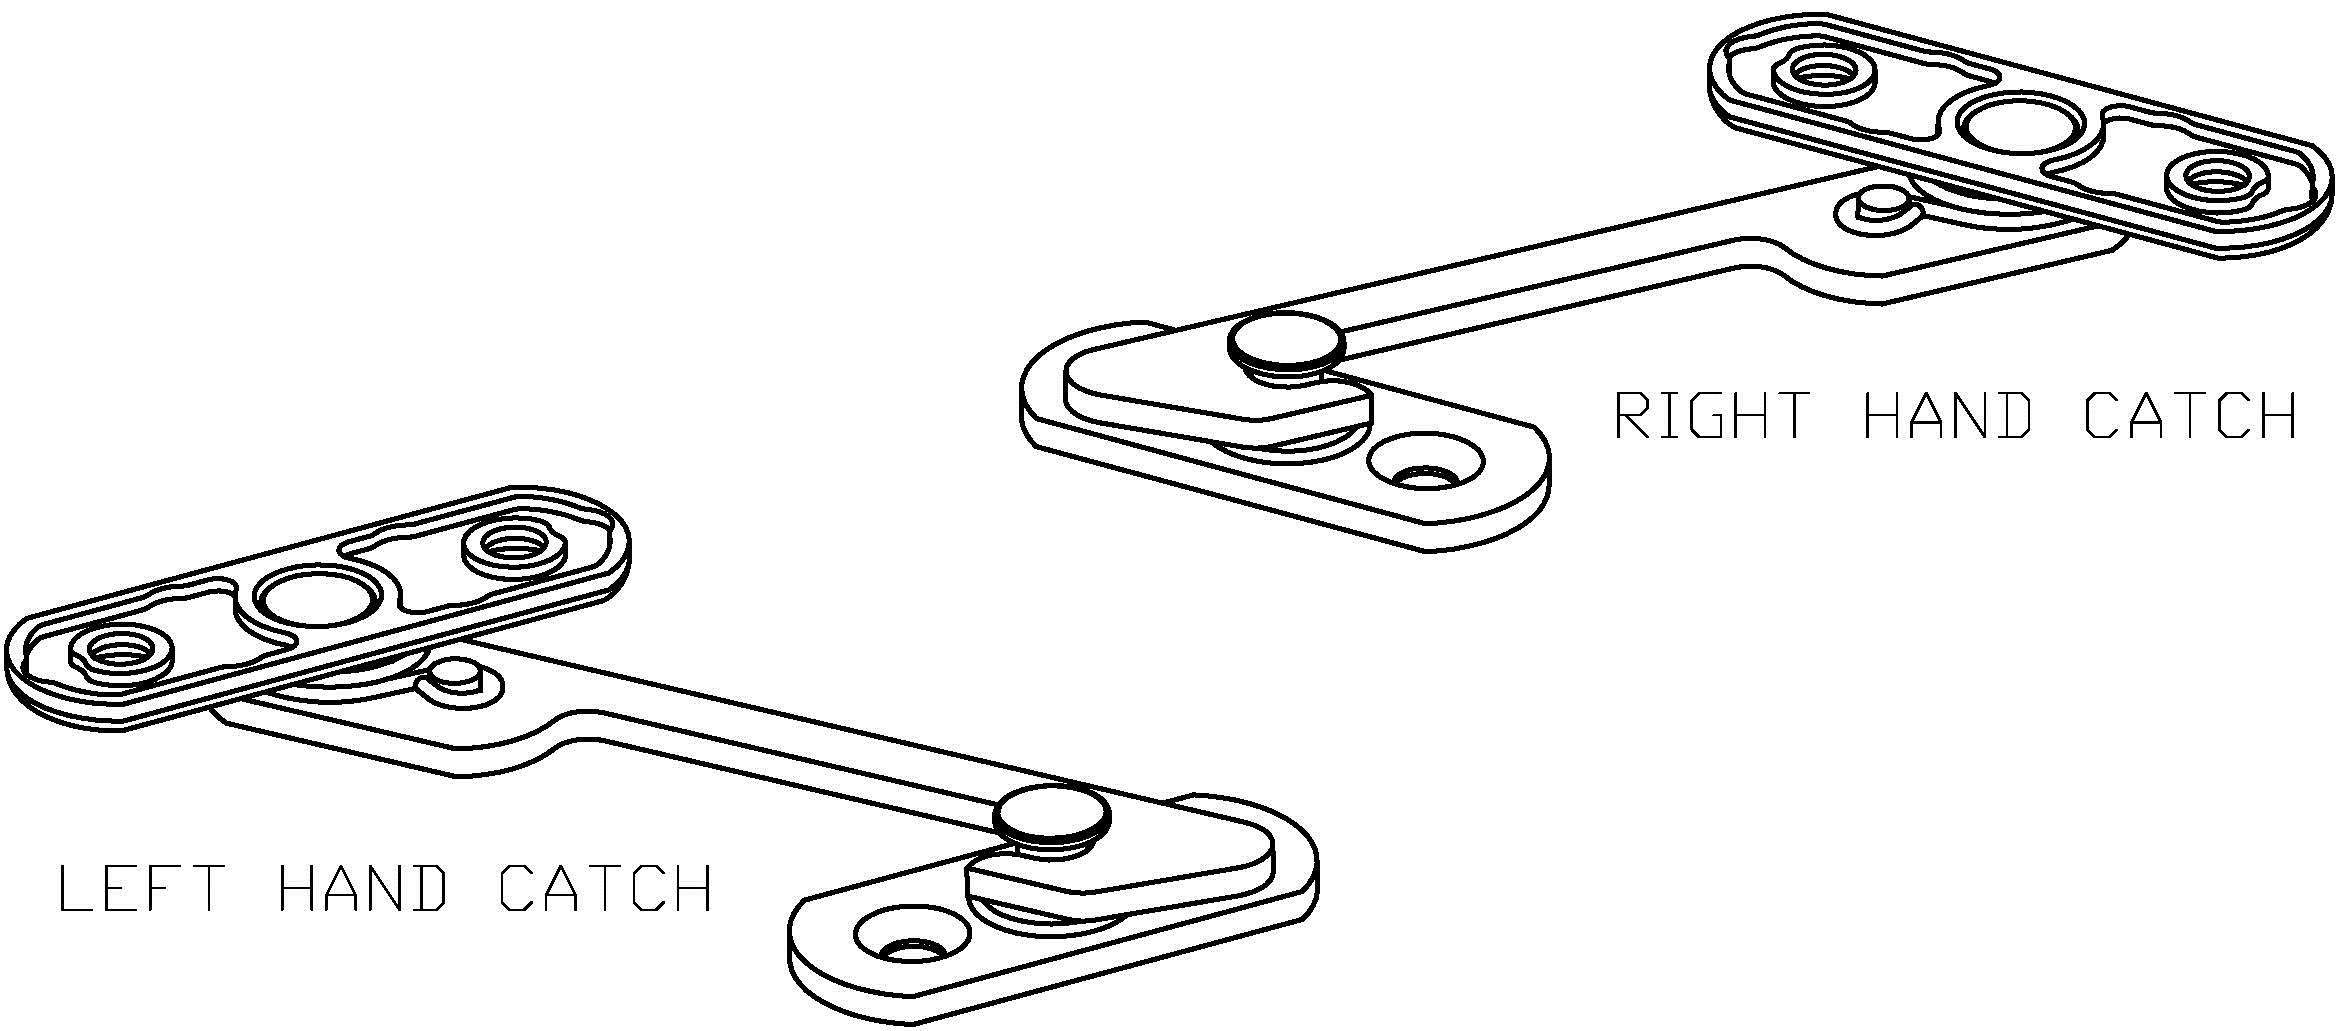 D64 Restrictor Safety Catch Handing drawing jpeg